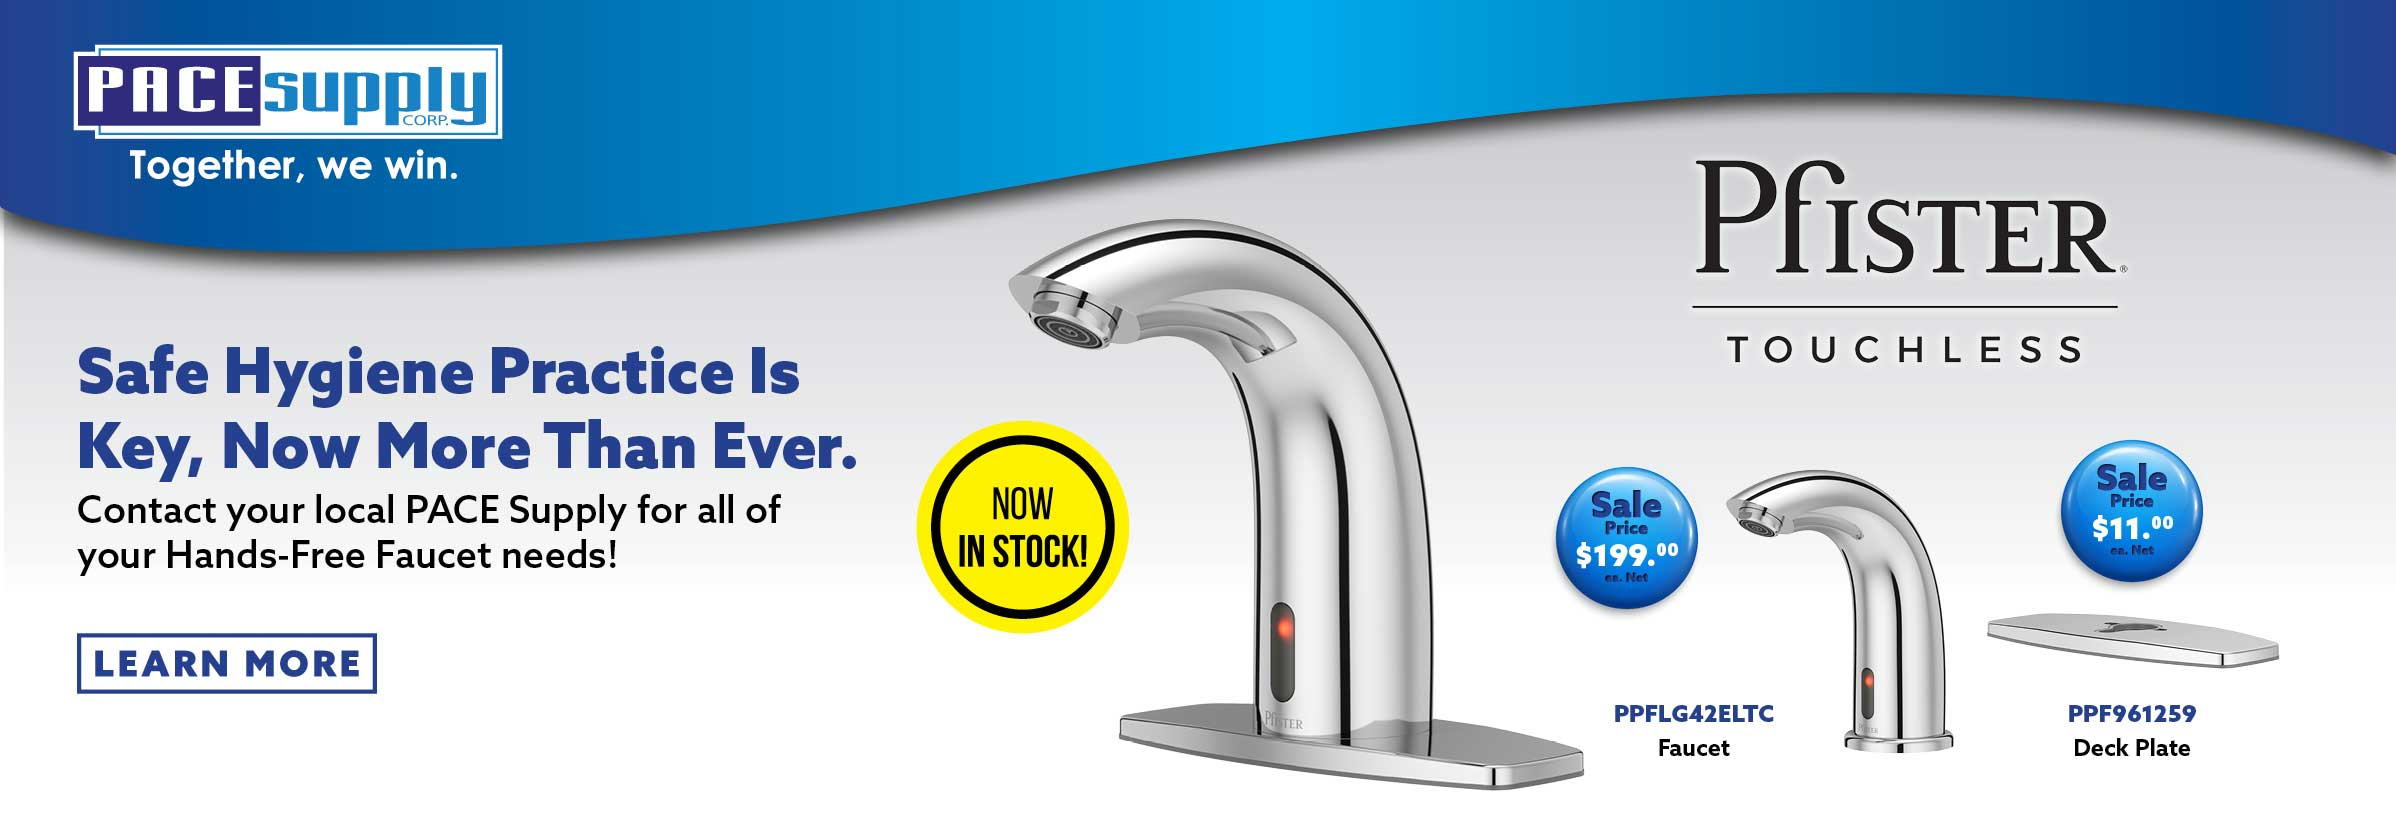 Pfister Touchless Hands-free Faucet